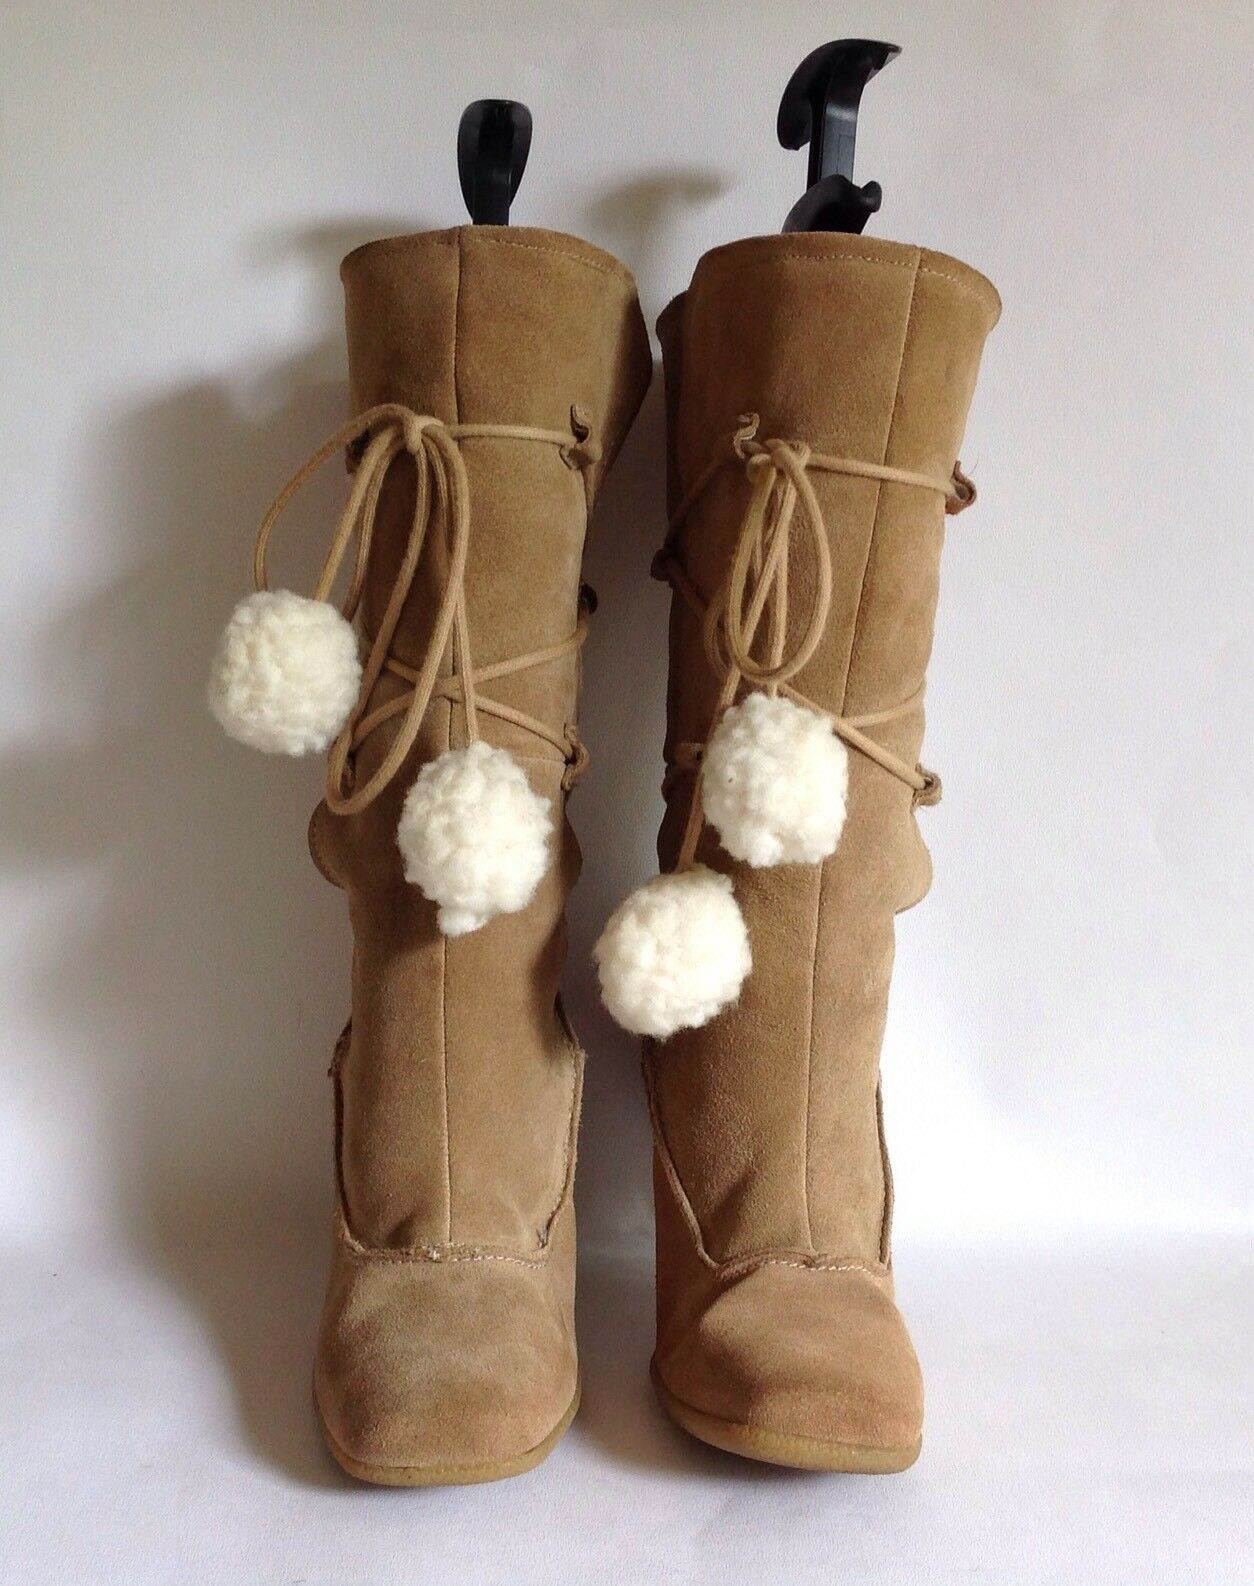 New Look Buff Suede Faux Shearling Winter Lined 4.25